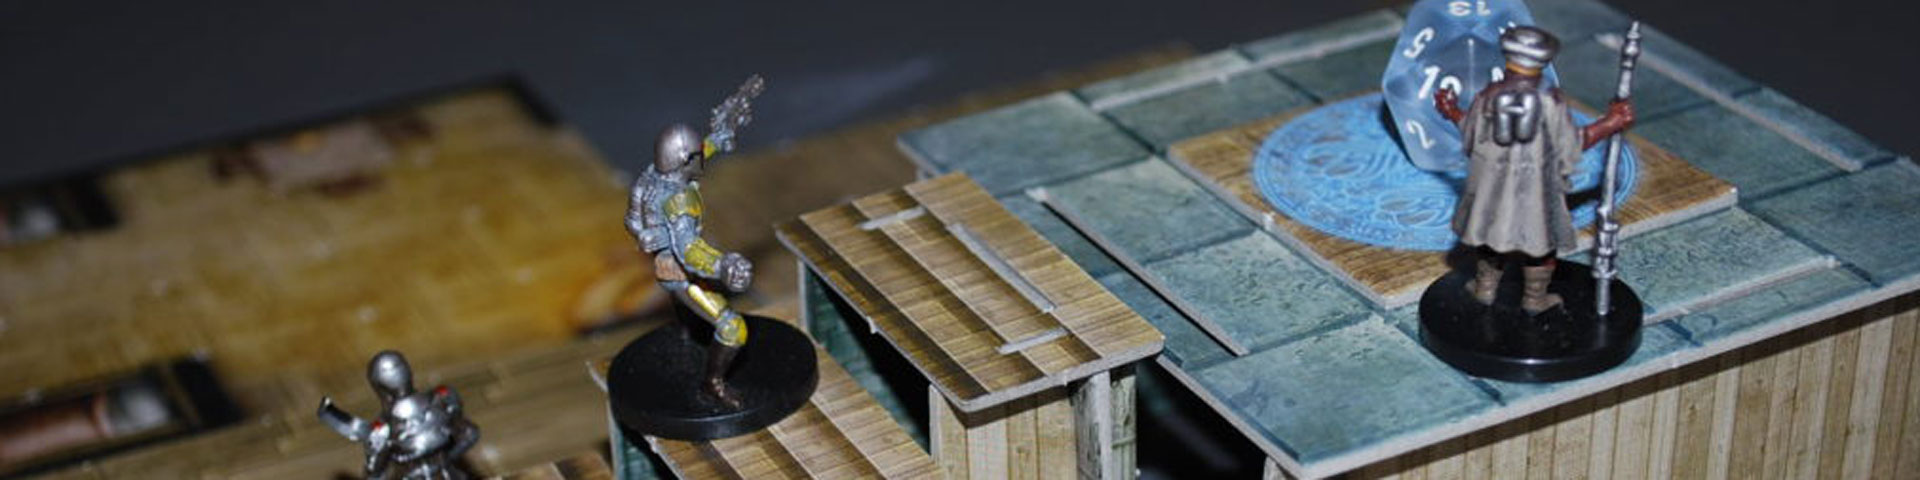 Star Wars miniatures make their way up a tile-based staircase.